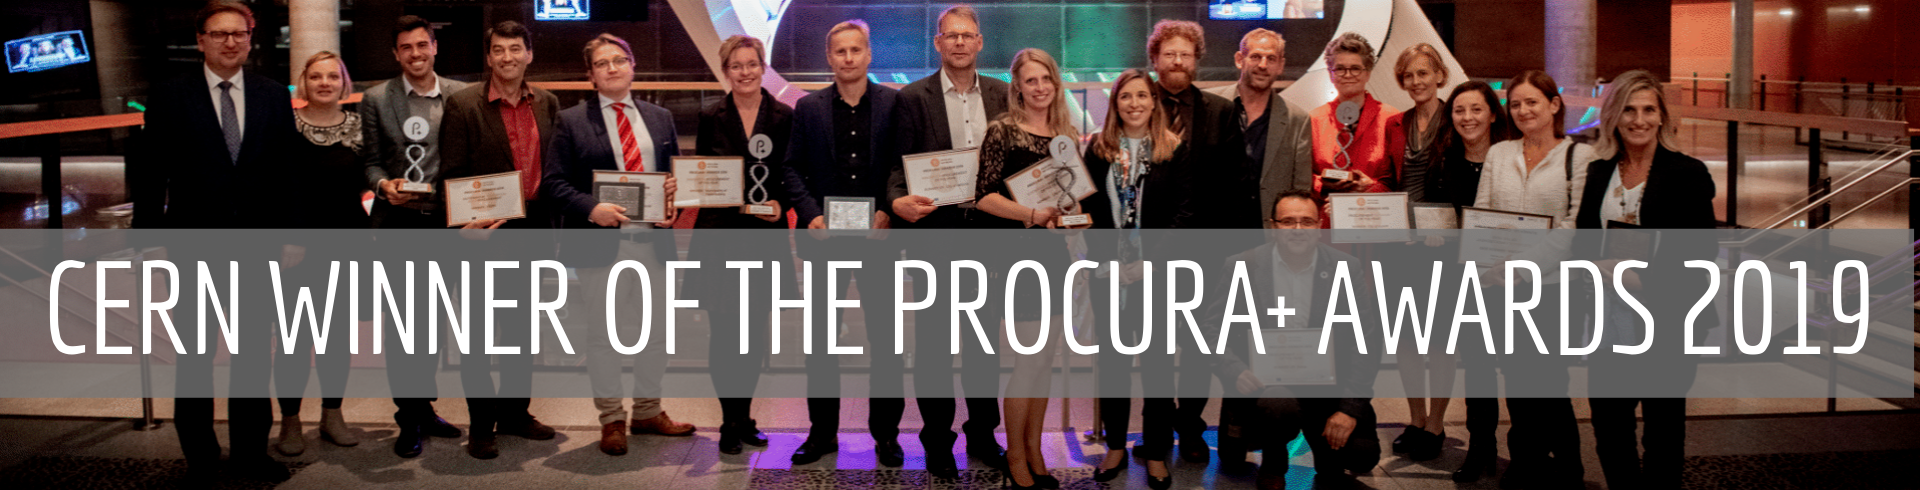 CERN winner of the Procura+ Awards 2019